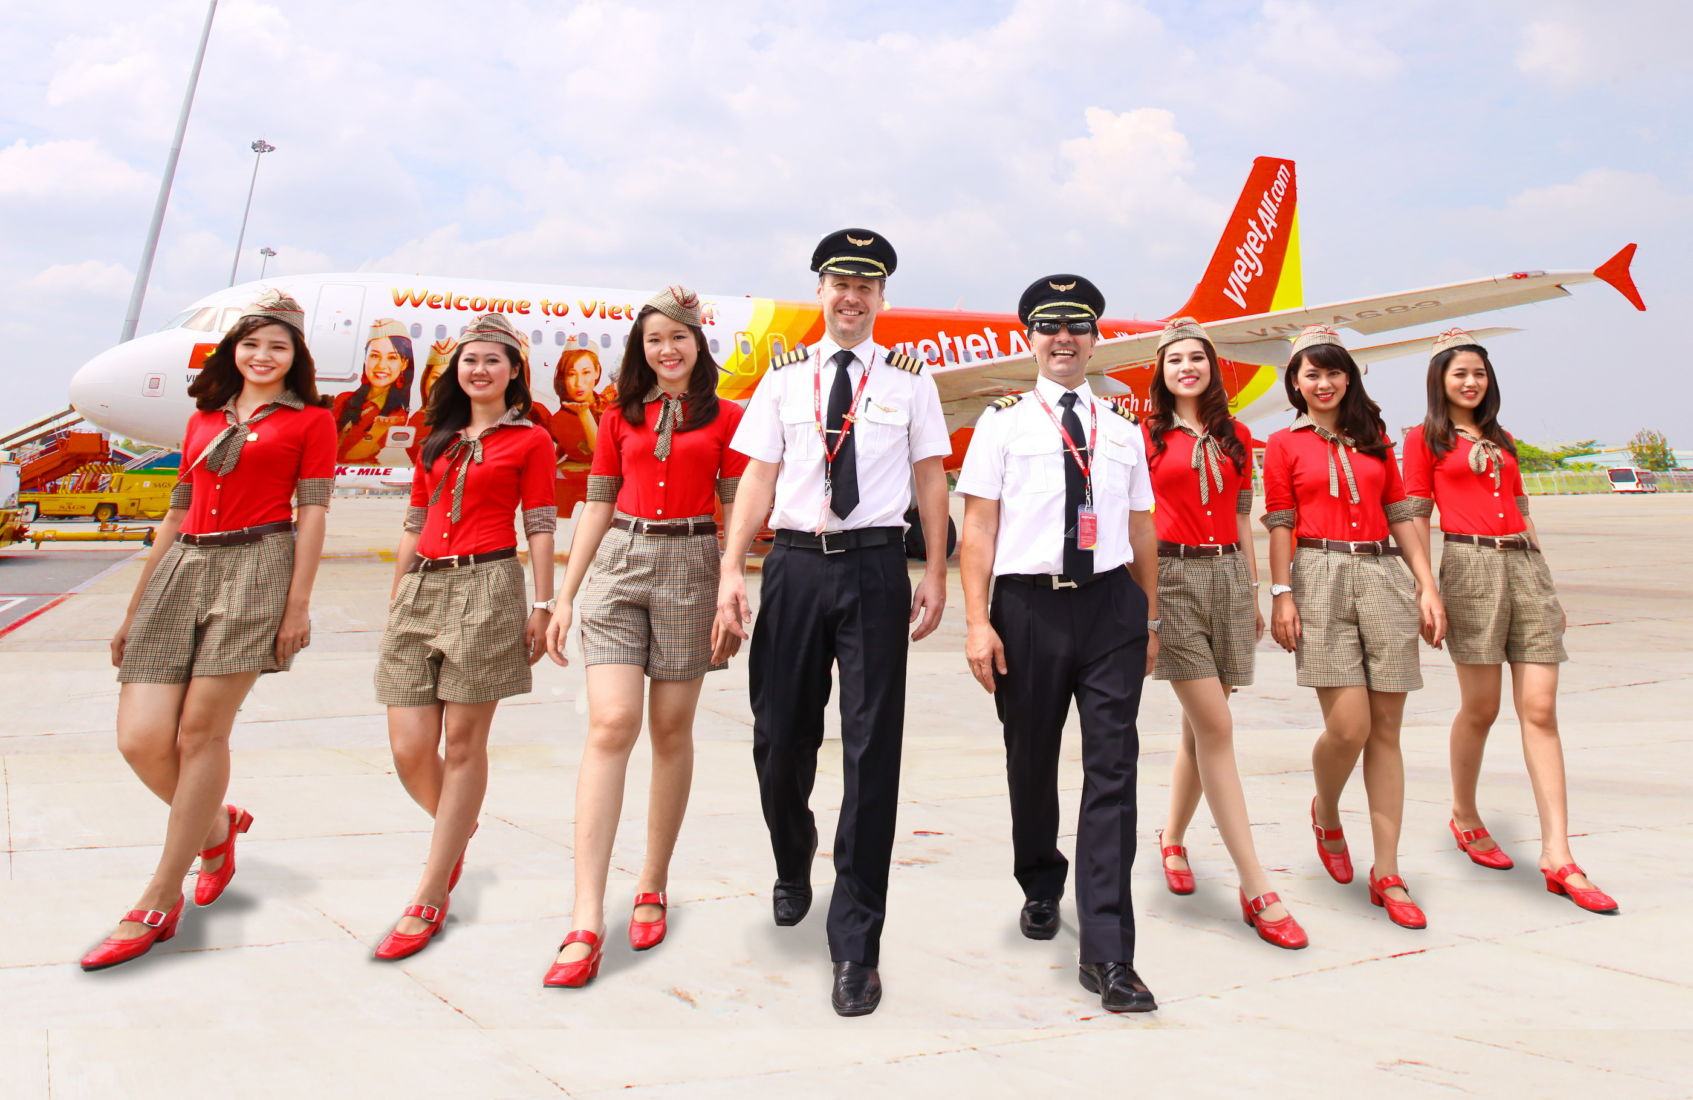 More direct flights between Vietnam and Thailand amid growth in tourism | The Thaiger